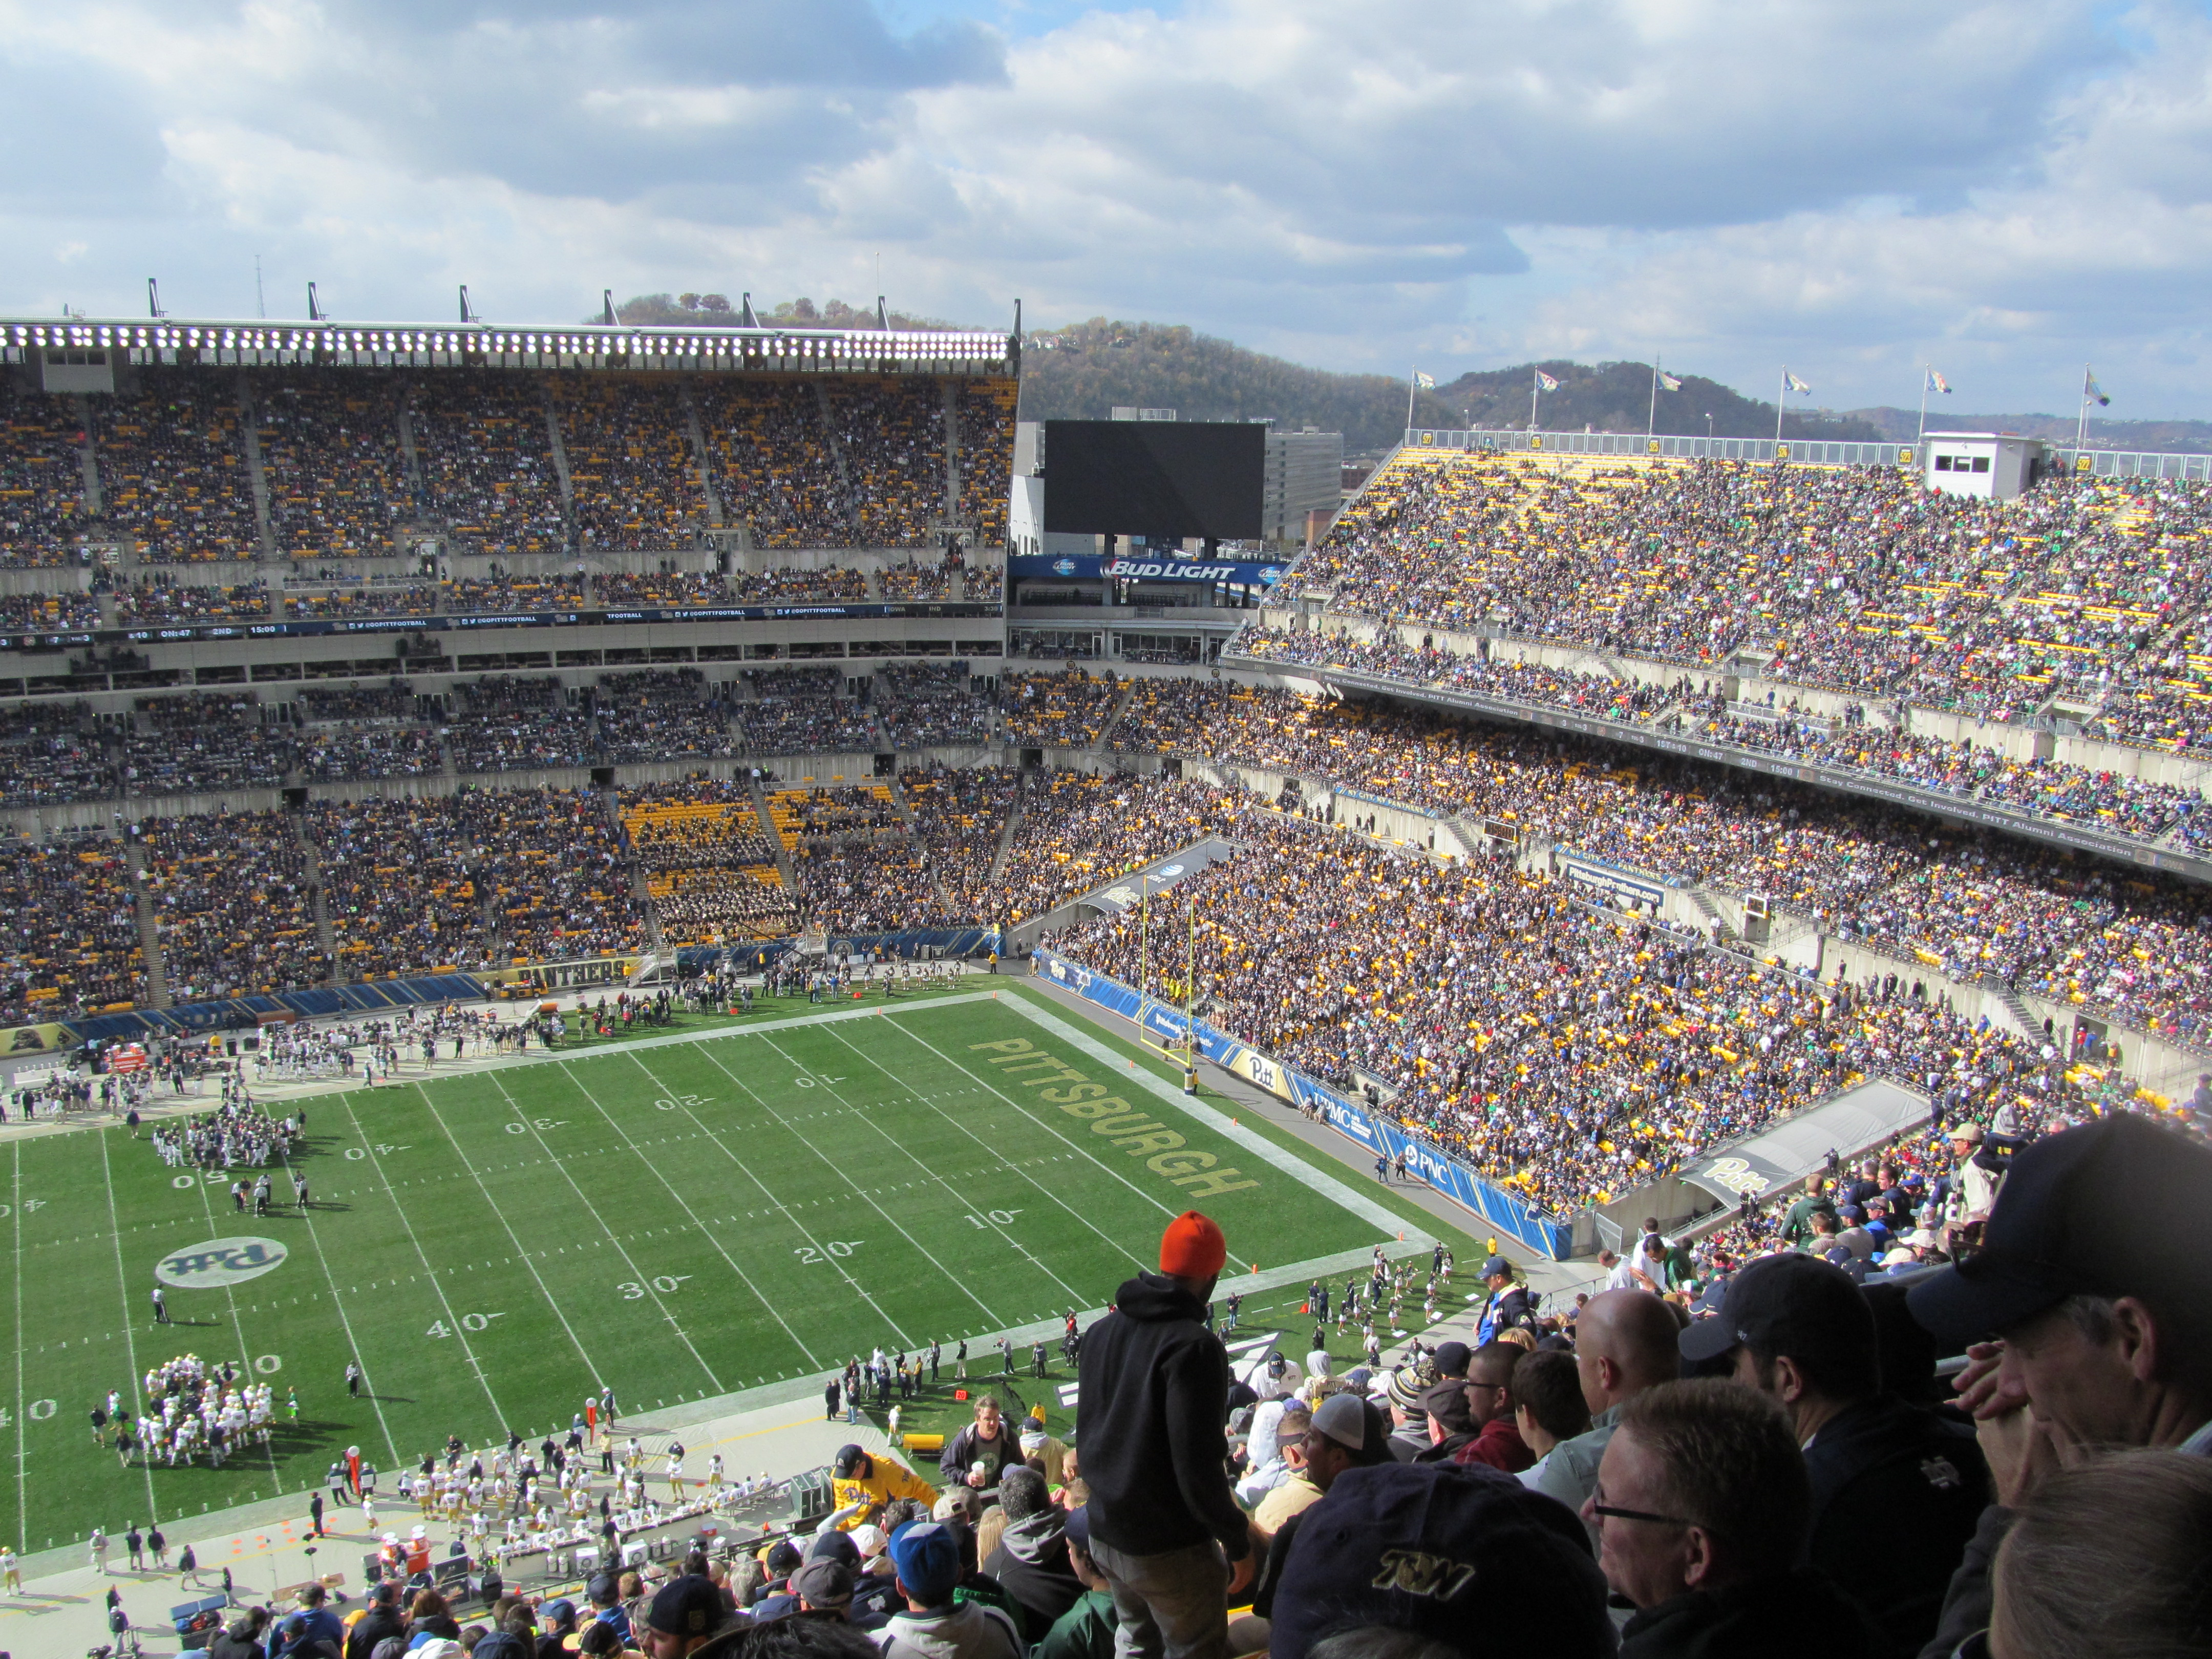 About Lucky Meisenheimer - t Pictures of heinz field pittsburgh pa